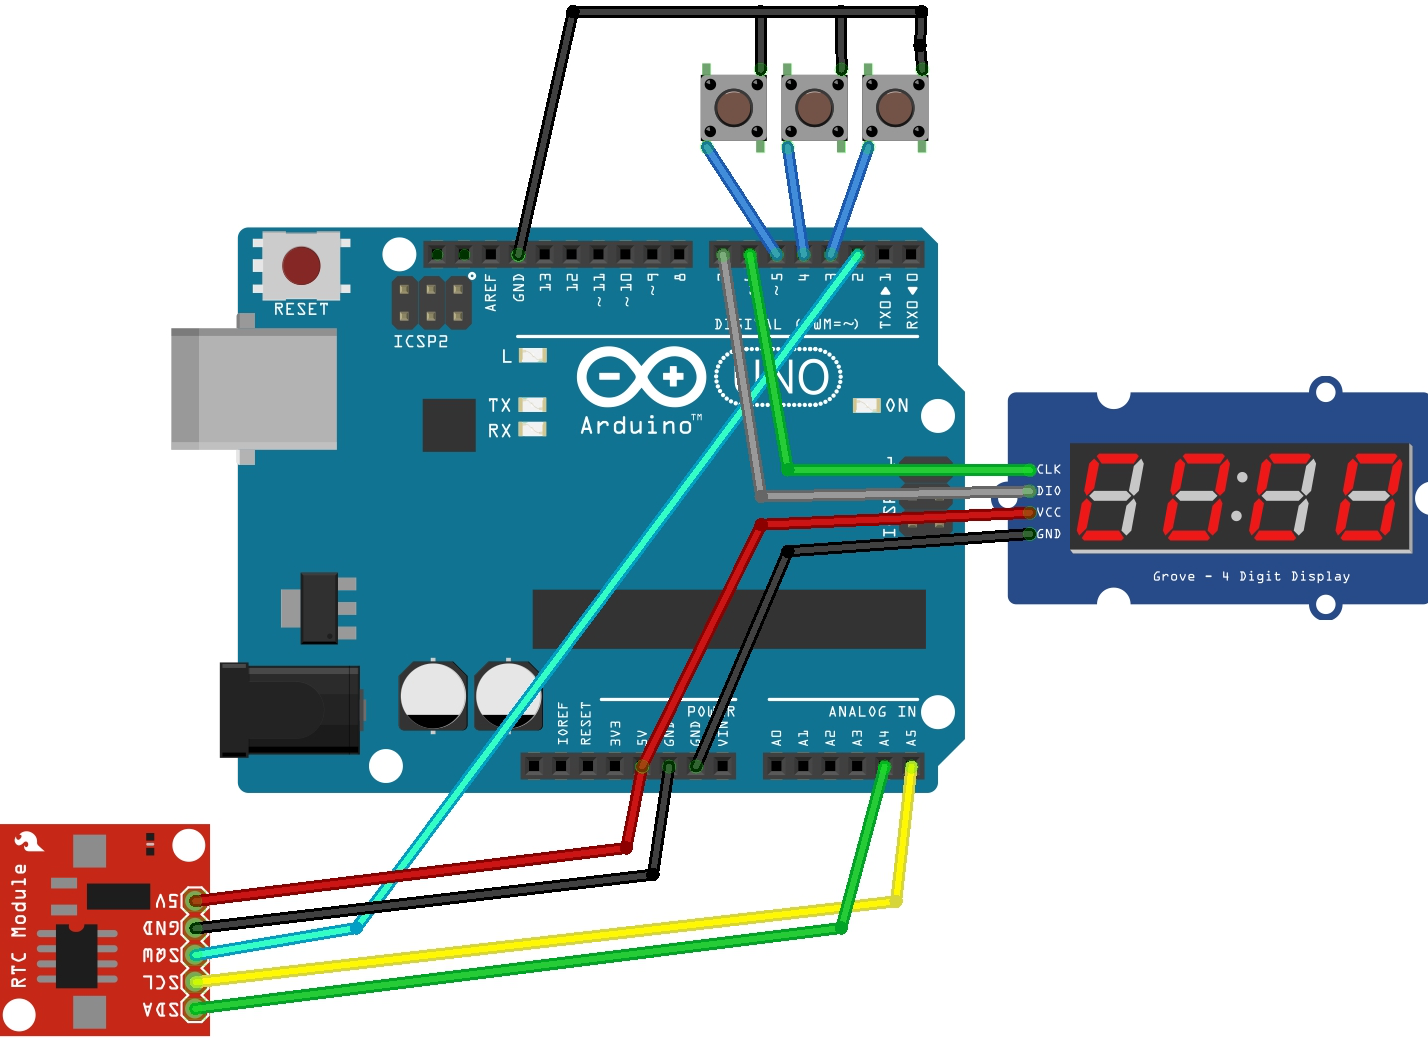 small resolution of ds3231 real time clock rtc is a low power full binary coded decimal bcd clock calendar the clock can operate in either the 24 hour or 12 hour format